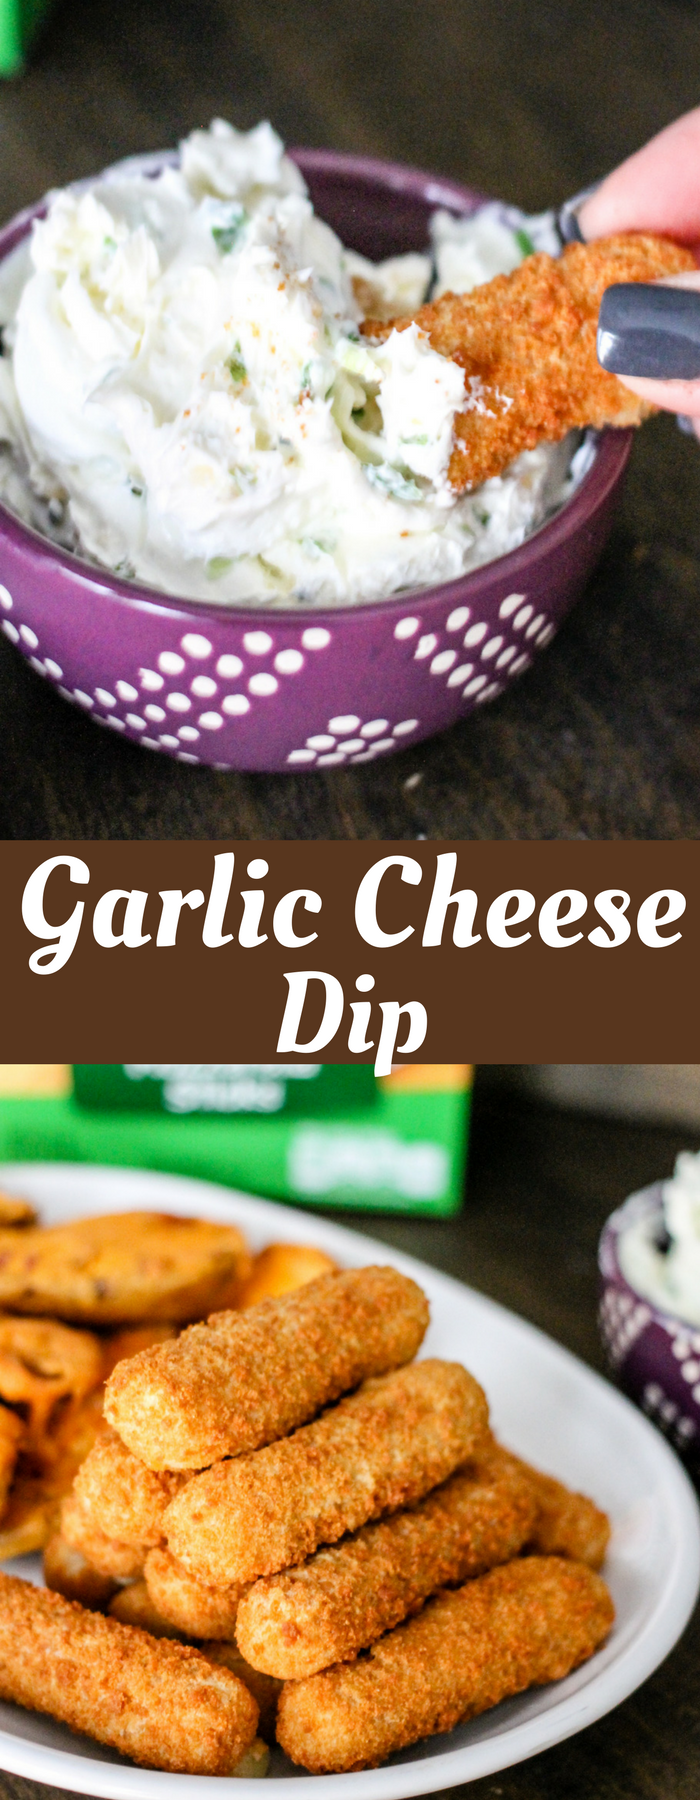 Garlic Cheese Dip is perfect for when you need a delicious appetizer! Dunk your favorite Mozzarella sticks, Loaded Potato Skins, or even pizza in this dip!